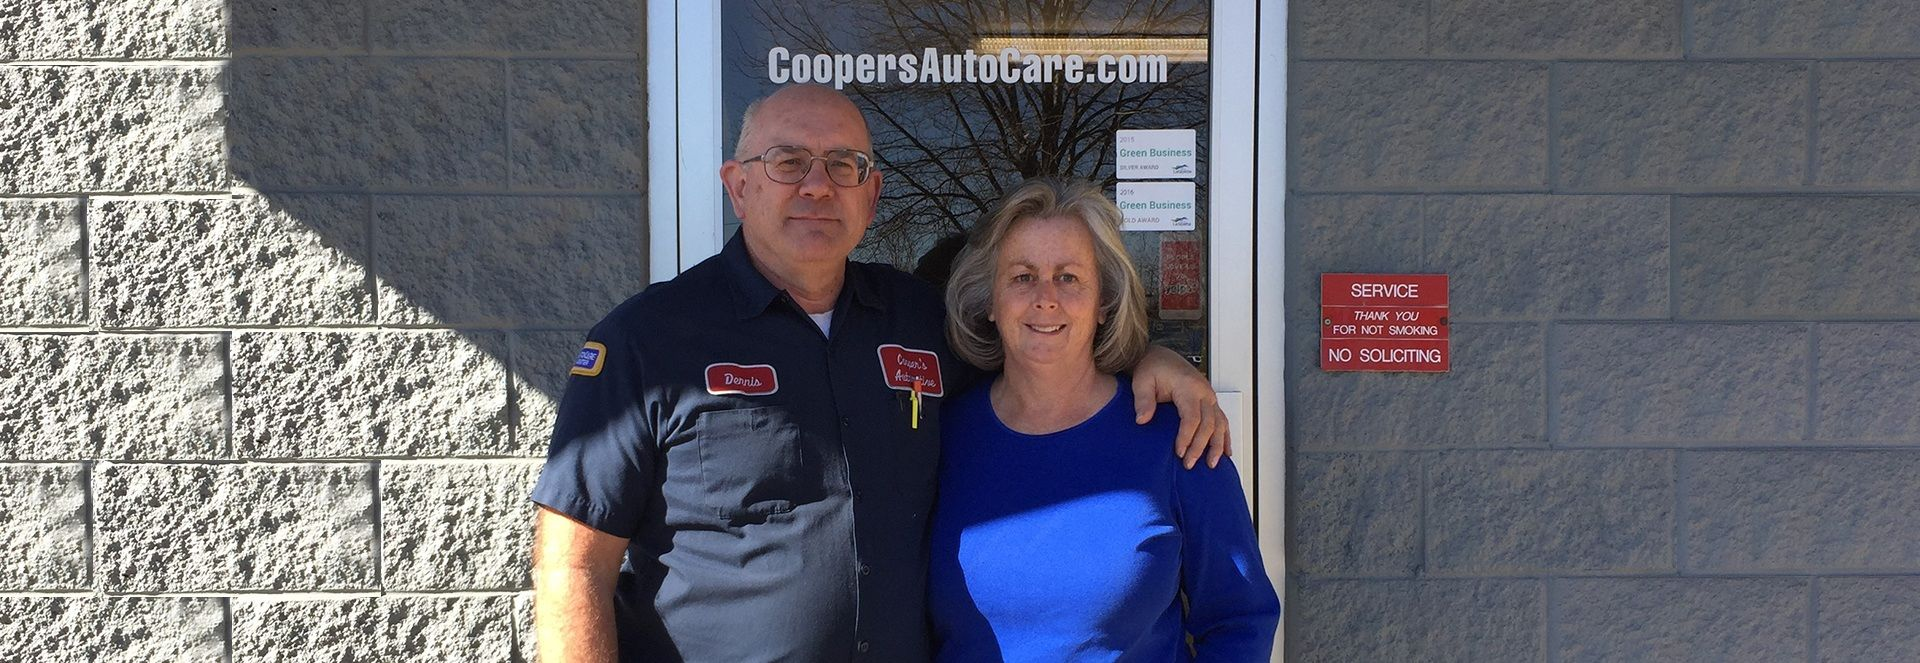 Coopers Automotive